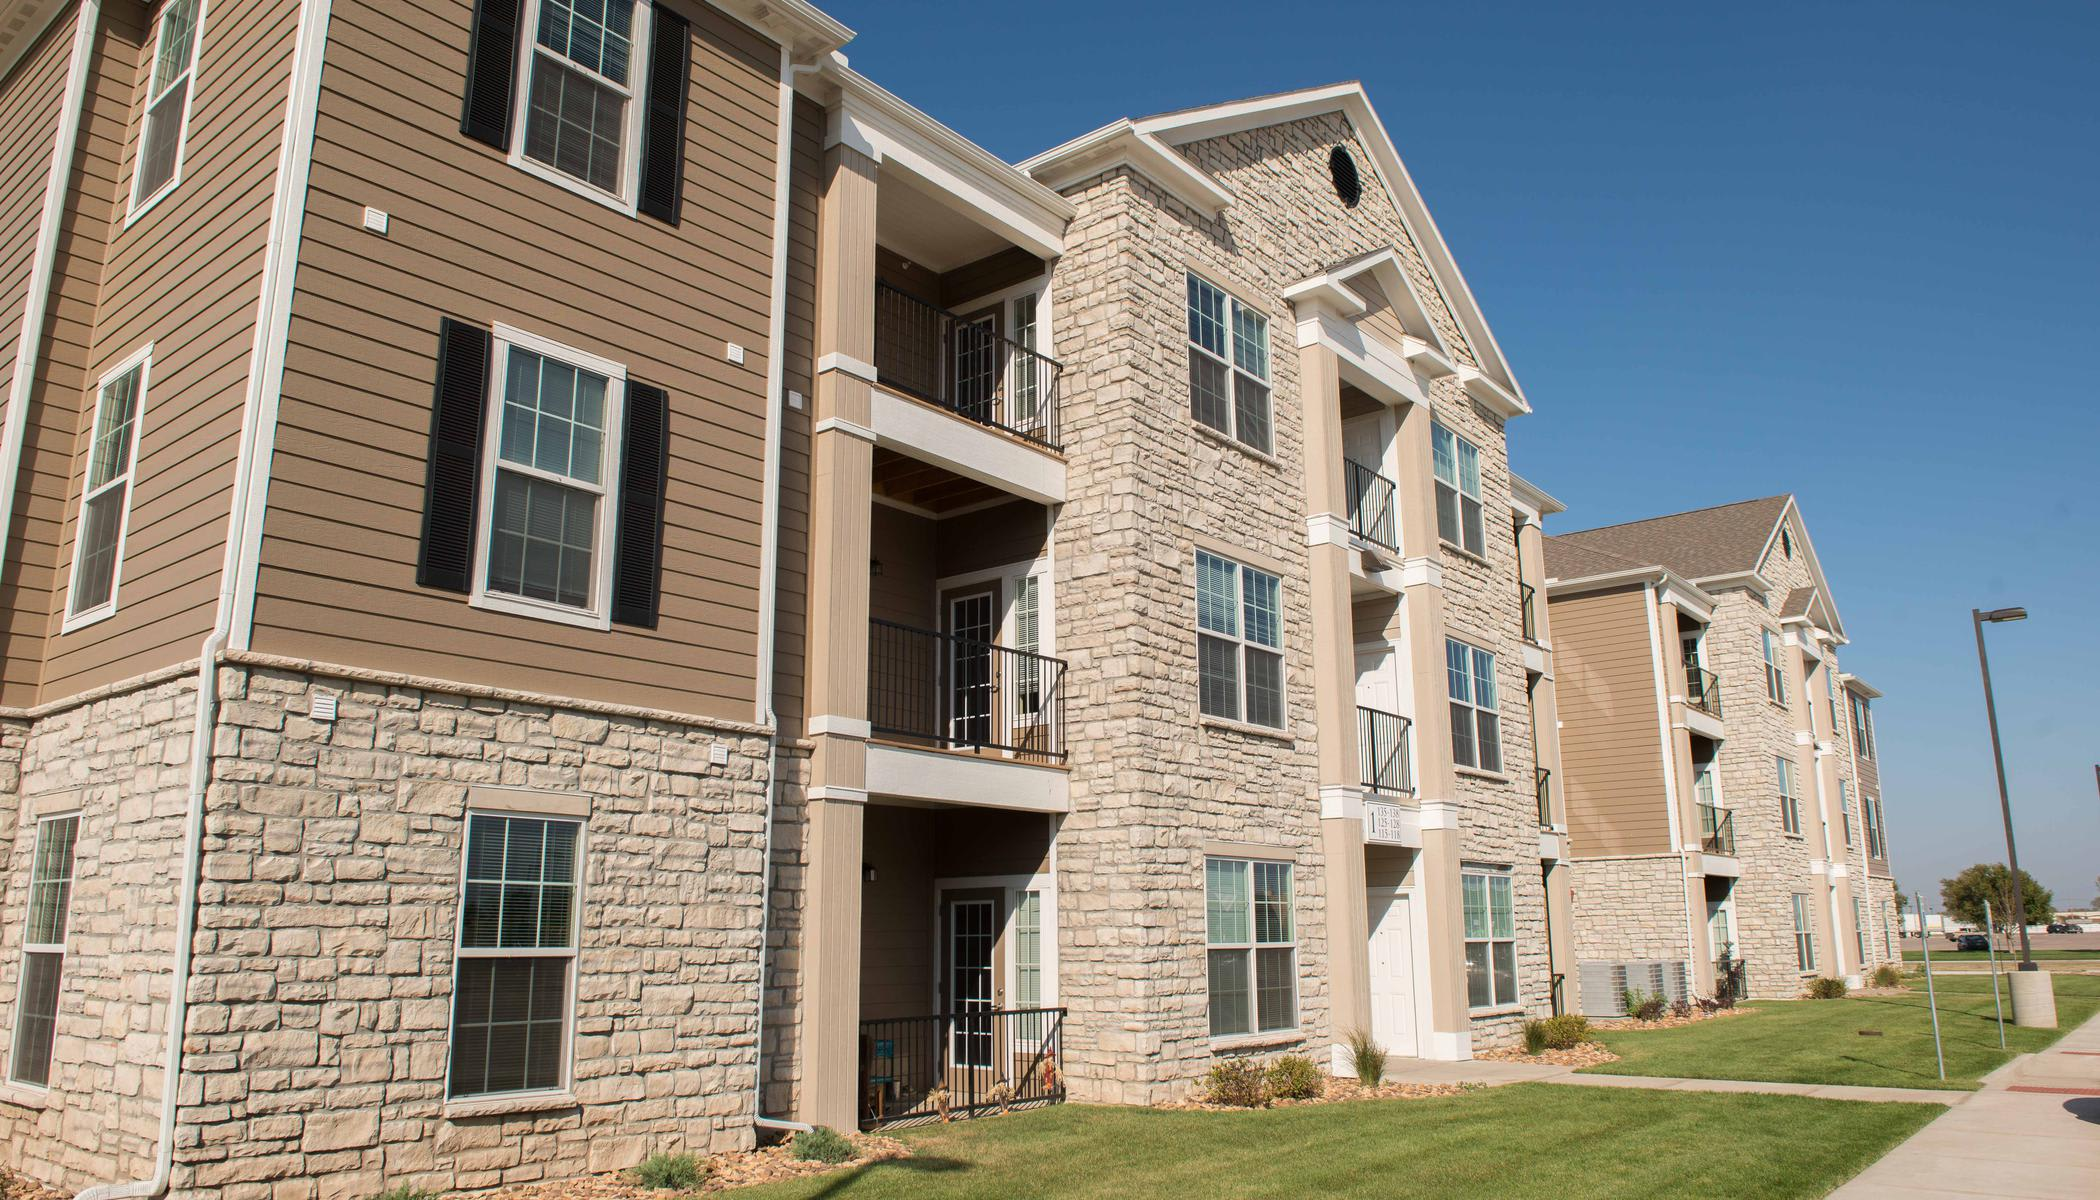 Exterior view of our apartments at The Reserves at Trail Ridge in Great Bend, KS